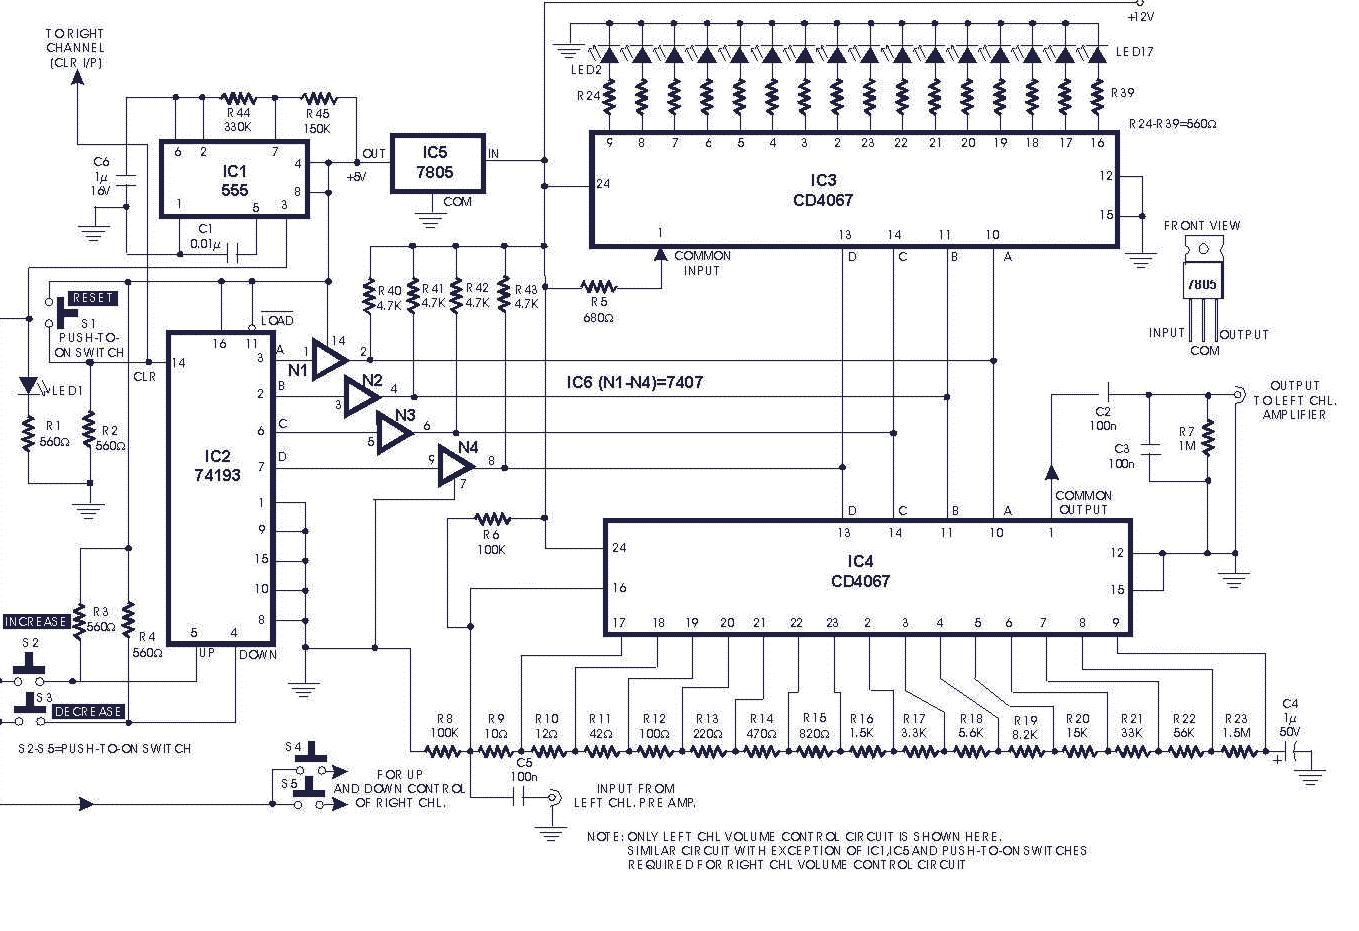 honeywell zone control diagram schematic control diagram #13